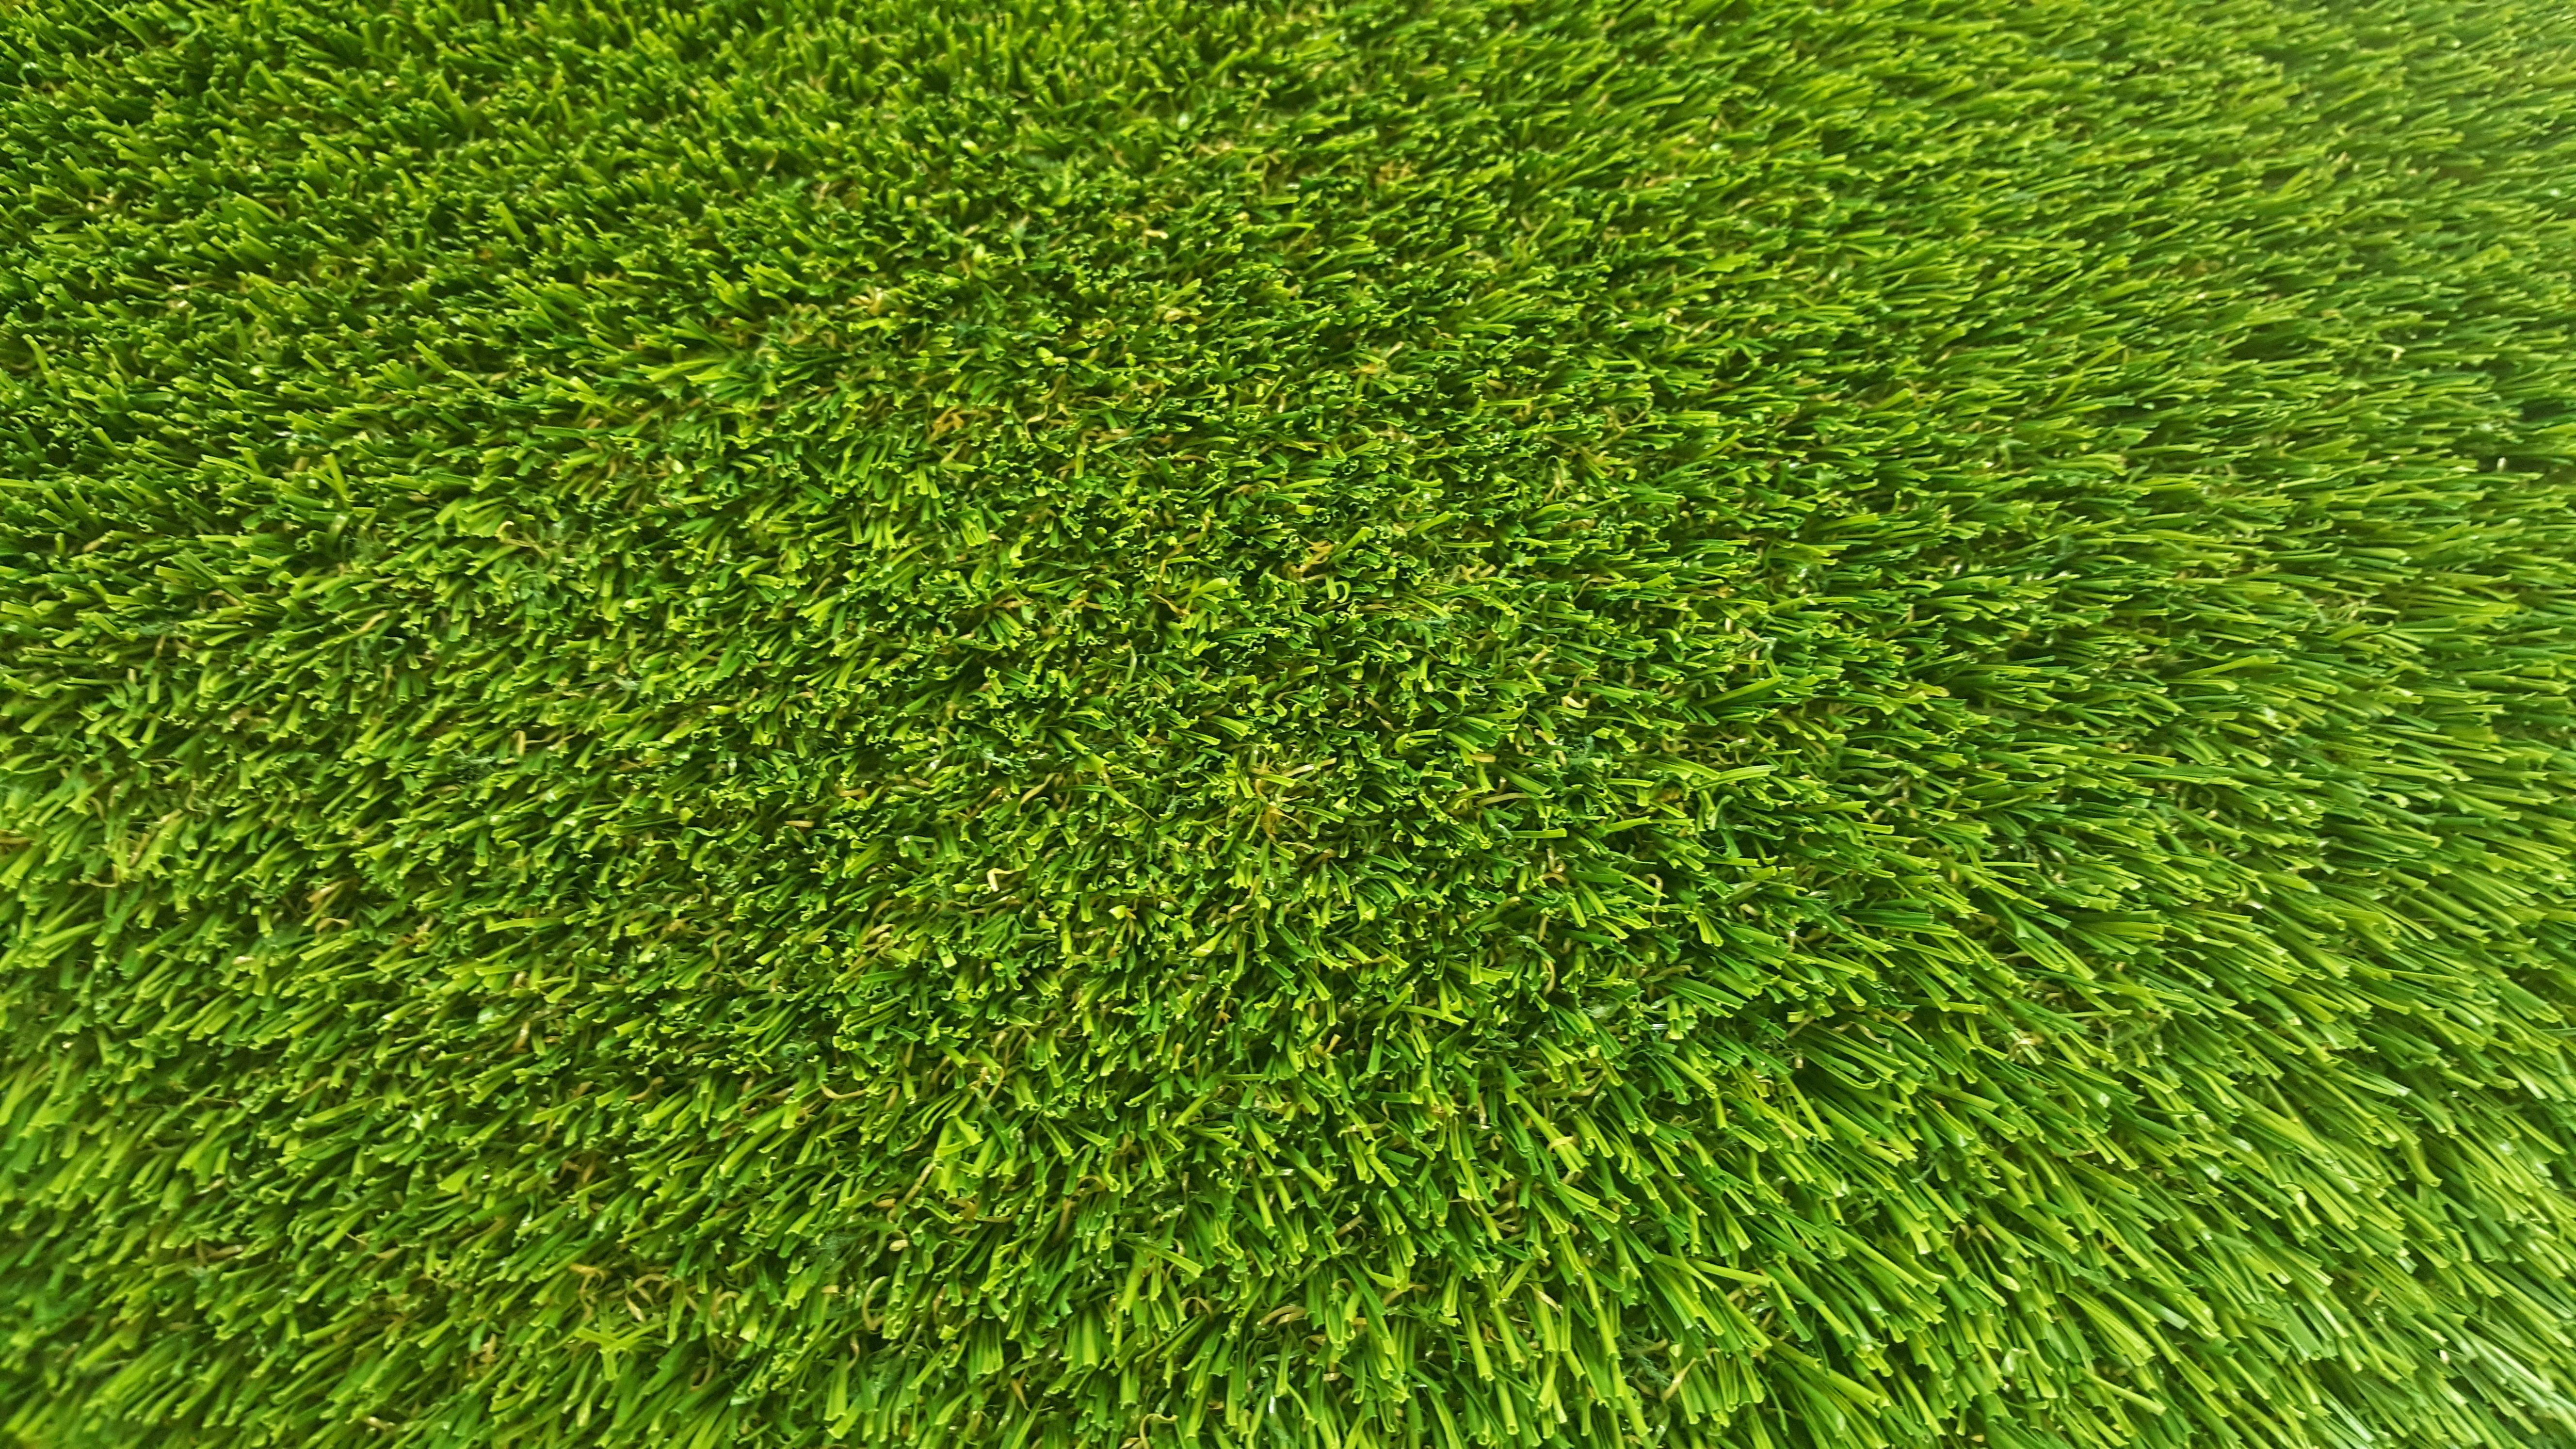 Artificial Turf Grass Products Artificial turf grass